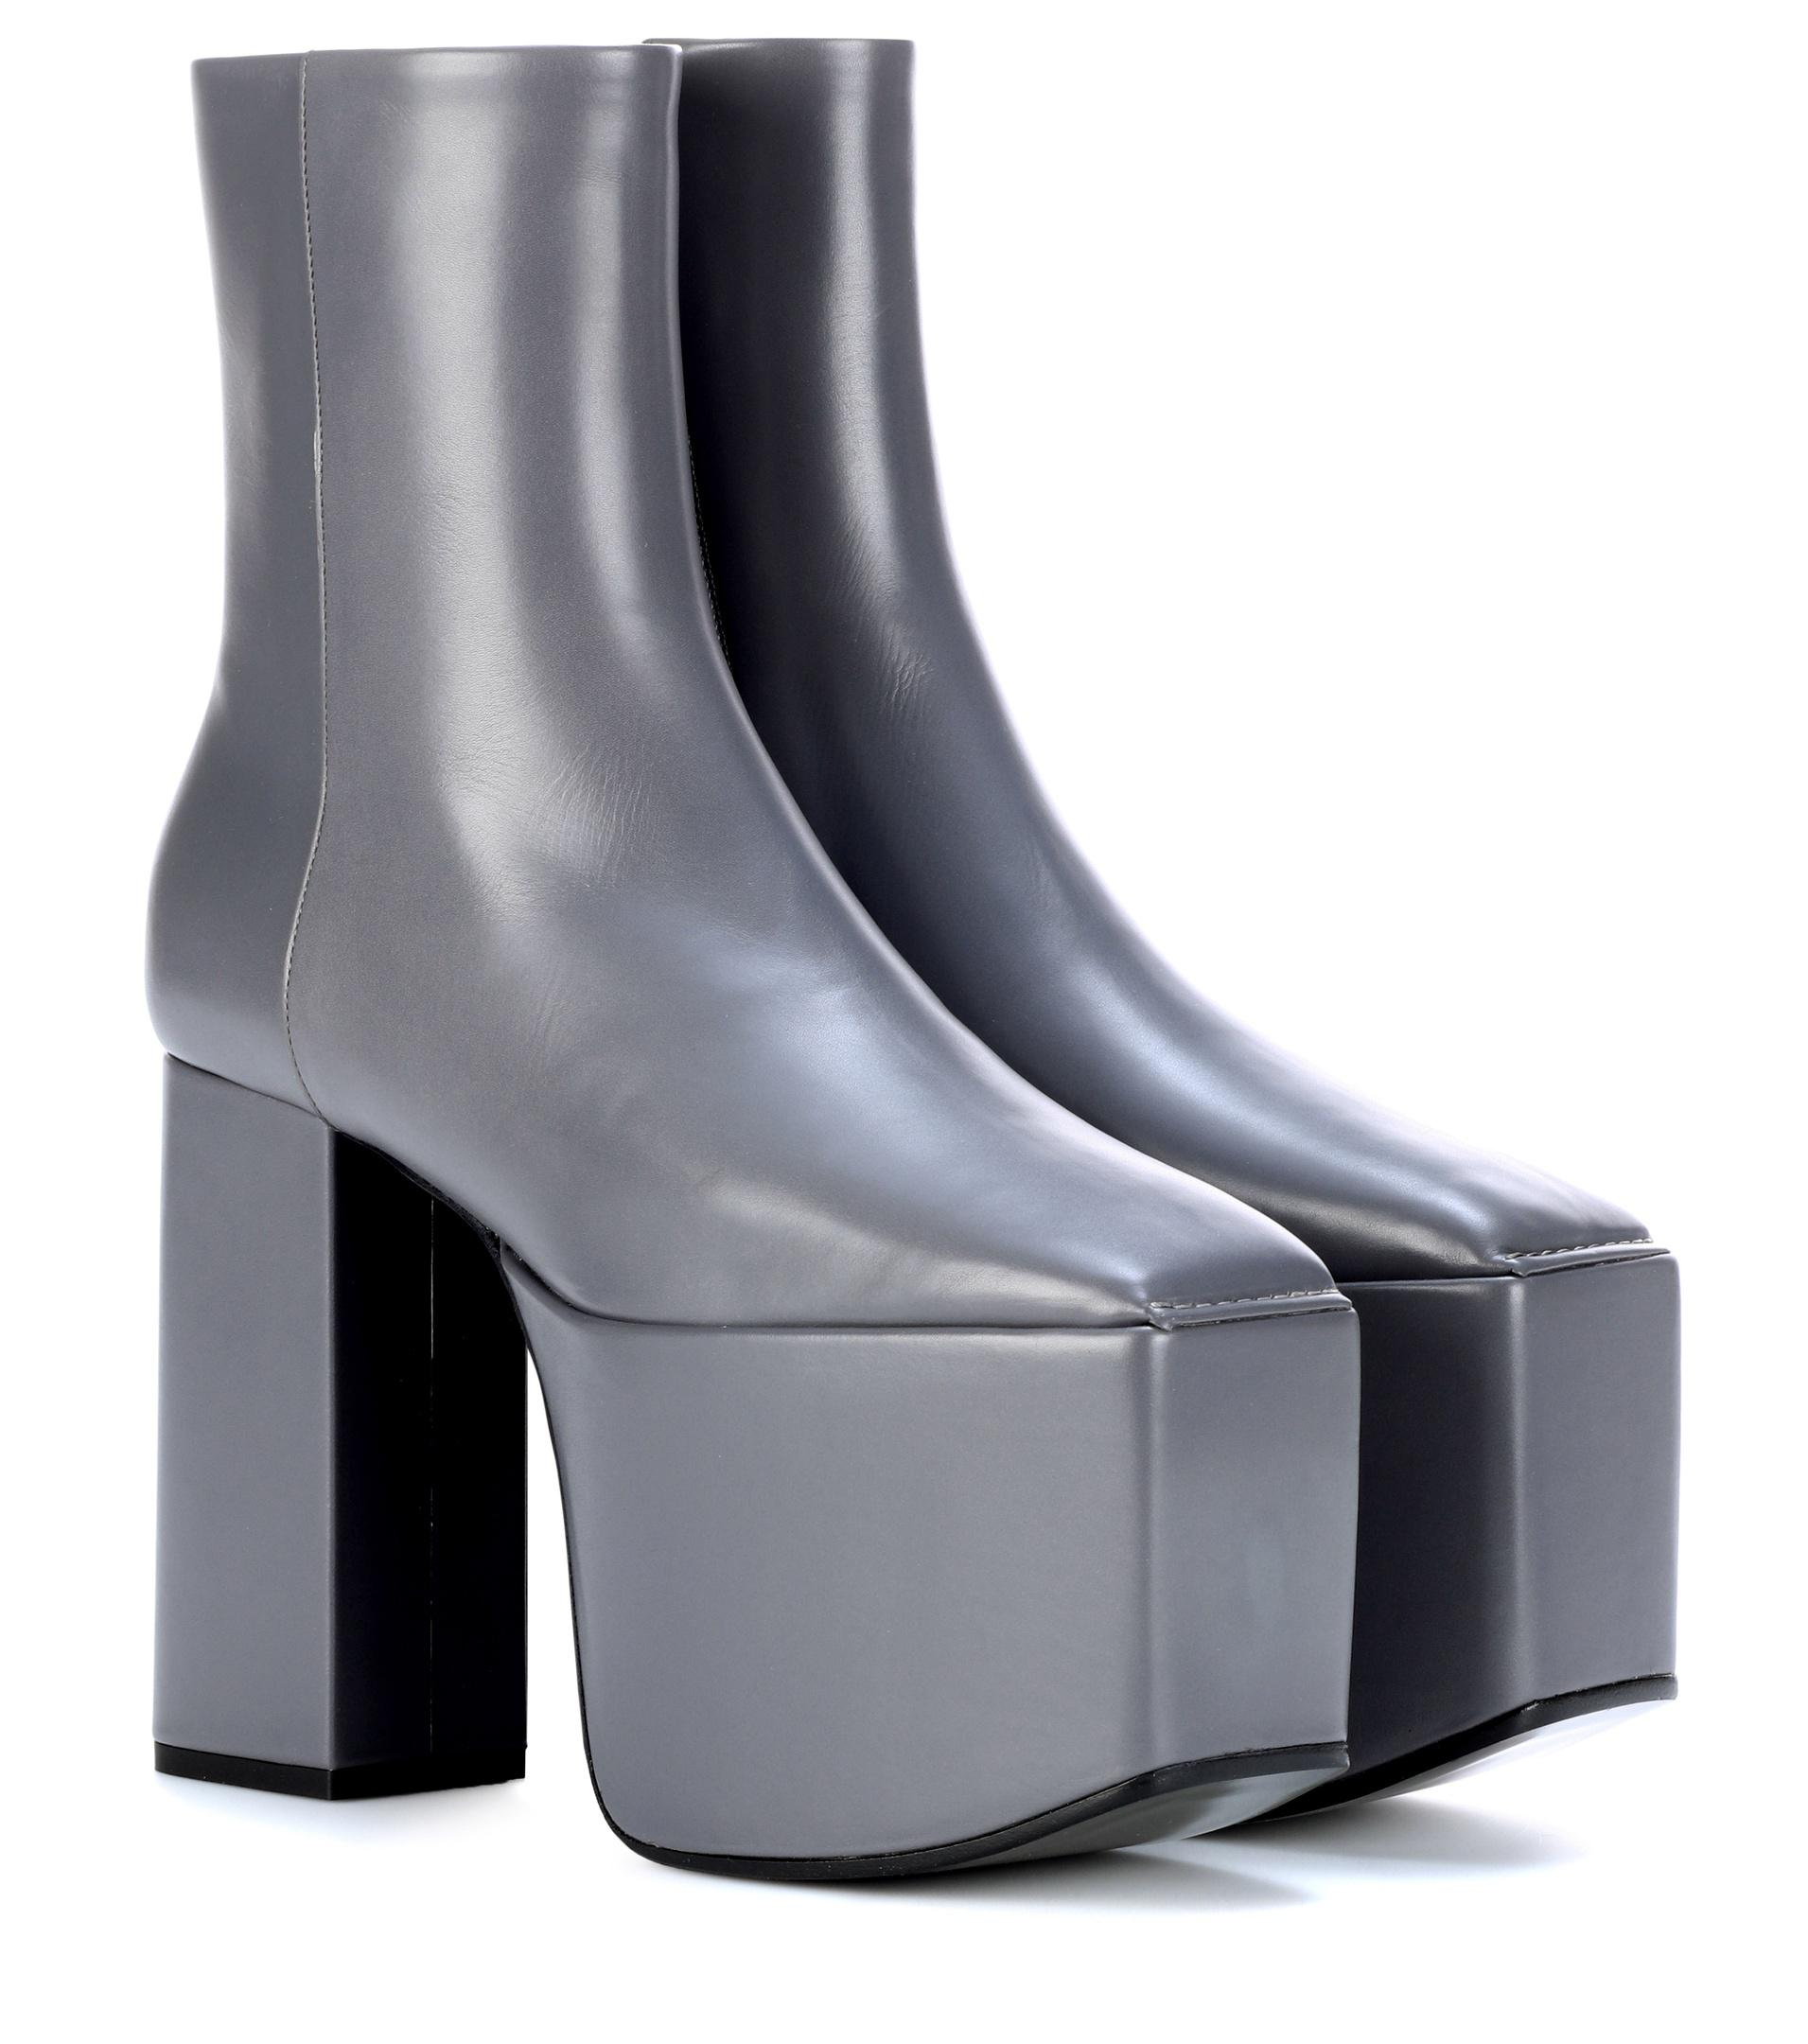 lyst balenciaga plateau leather ankle boots in gray. Black Bedroom Furniture Sets. Home Design Ideas